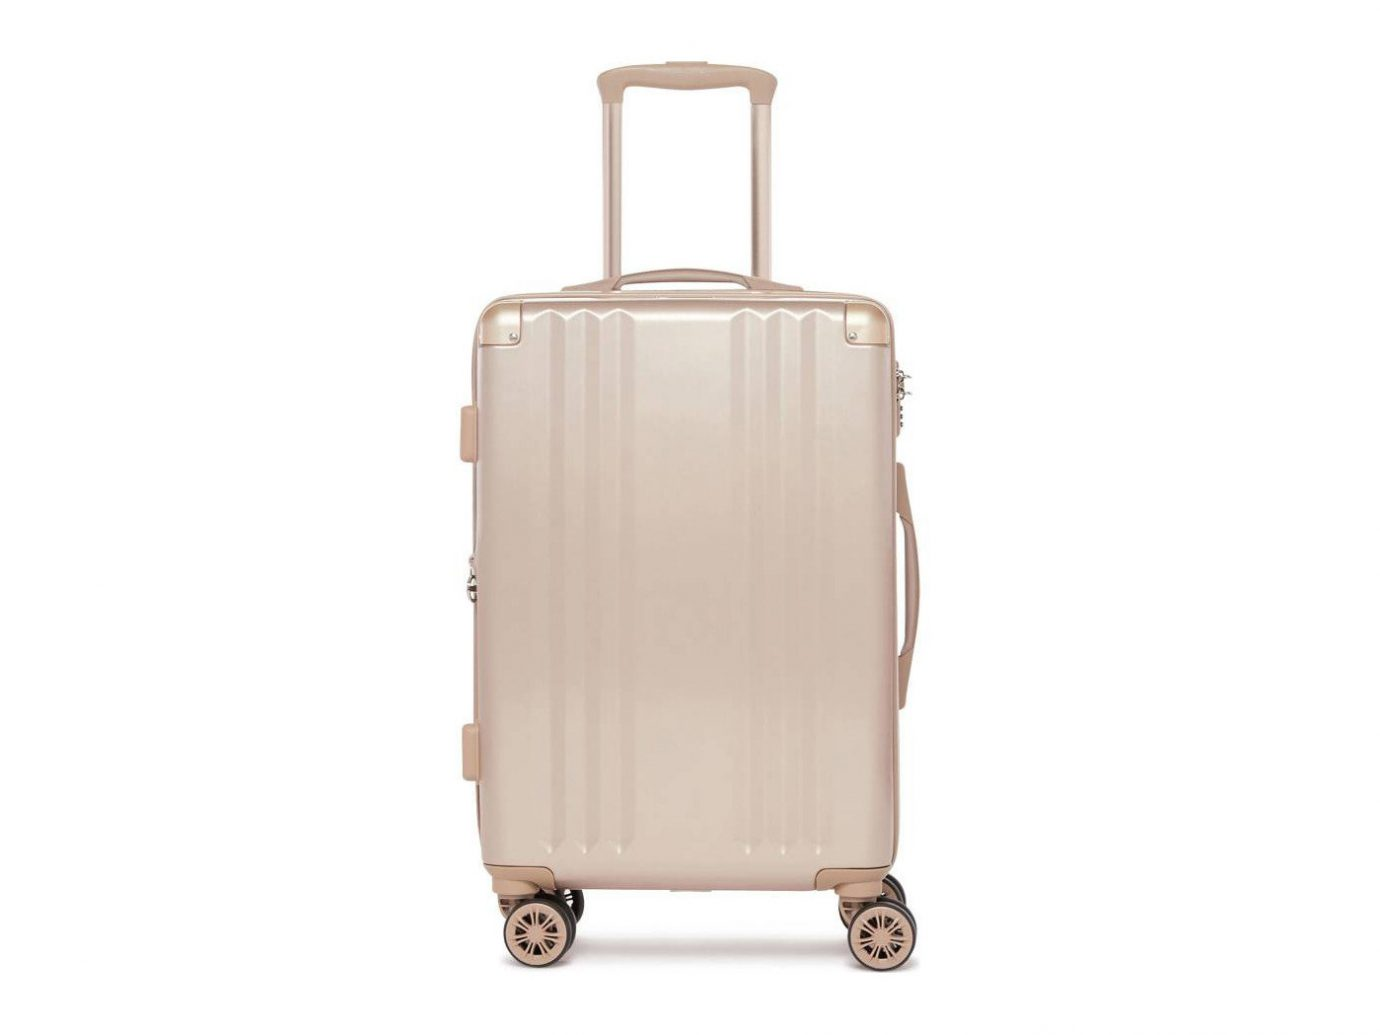 Travel Shop Travel Tech Travel Tips product suitcase beige product design hand luggage appliance luggage & bags